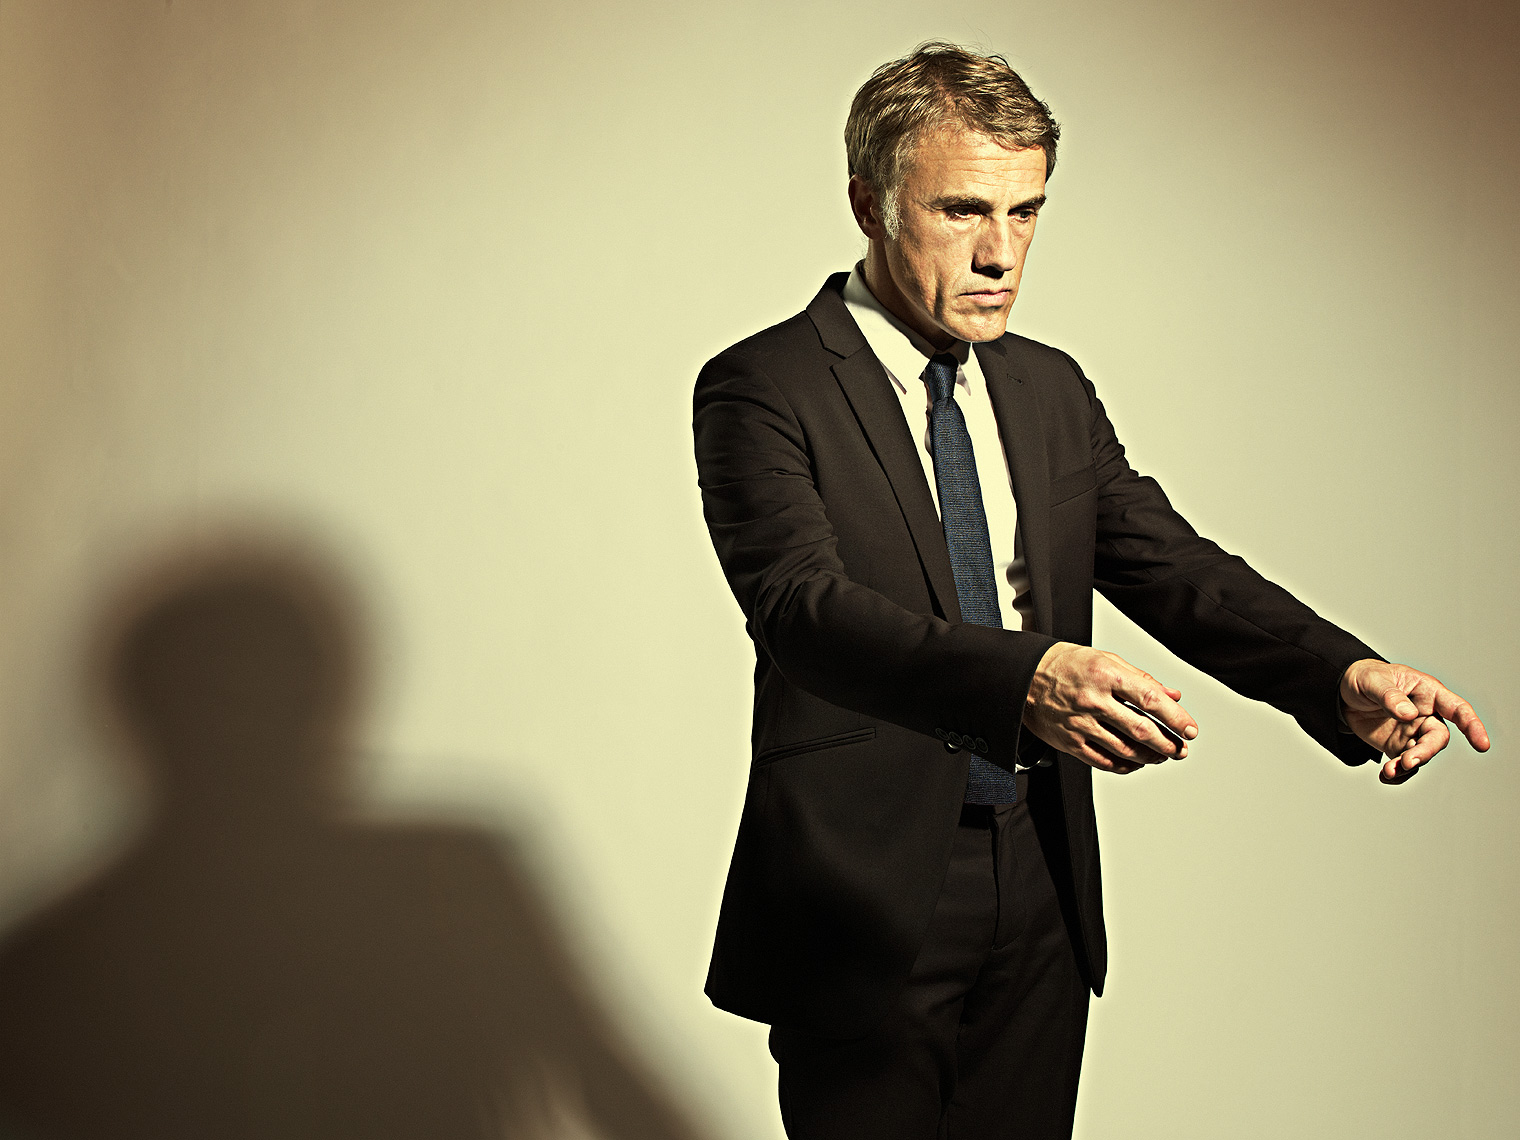 Christoph-Waltz-by-Robert-Ascroft-P-01.jpg